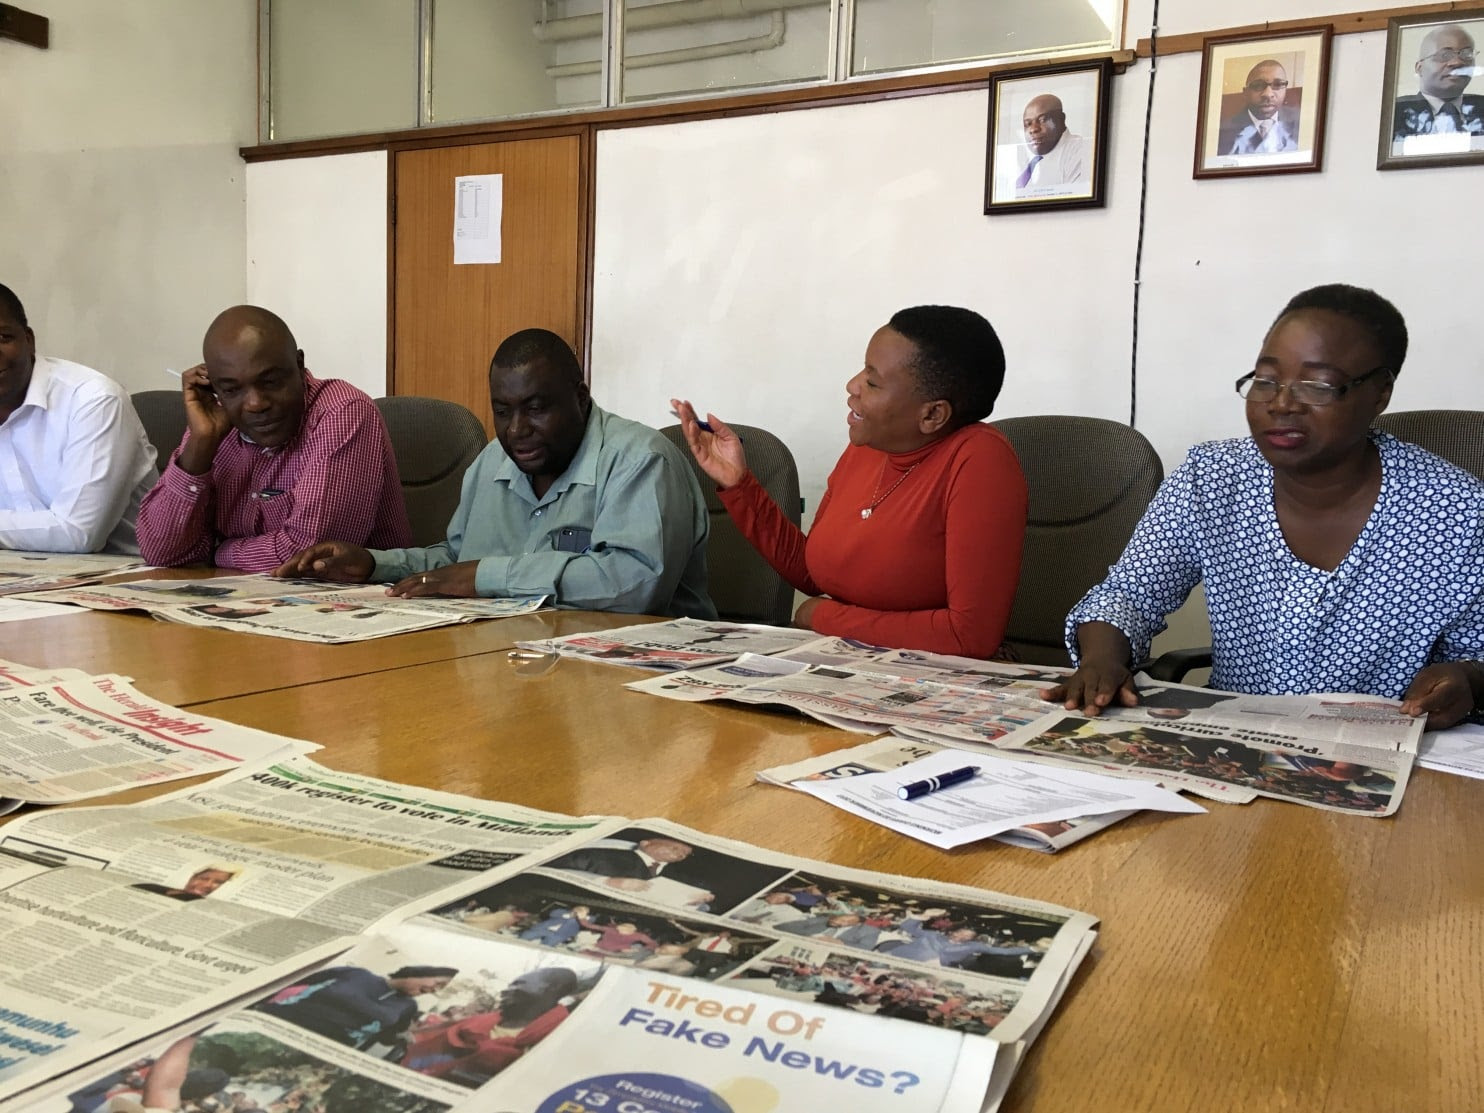 Reporters and editors plan the daily coverage of the Zimbabwe Herald. The state-owned newspaper was forced this month to cover the downfall of Robert Mugabe, whose rule it had long applauded. (Credit: Kevin Sieff/Washington Post)